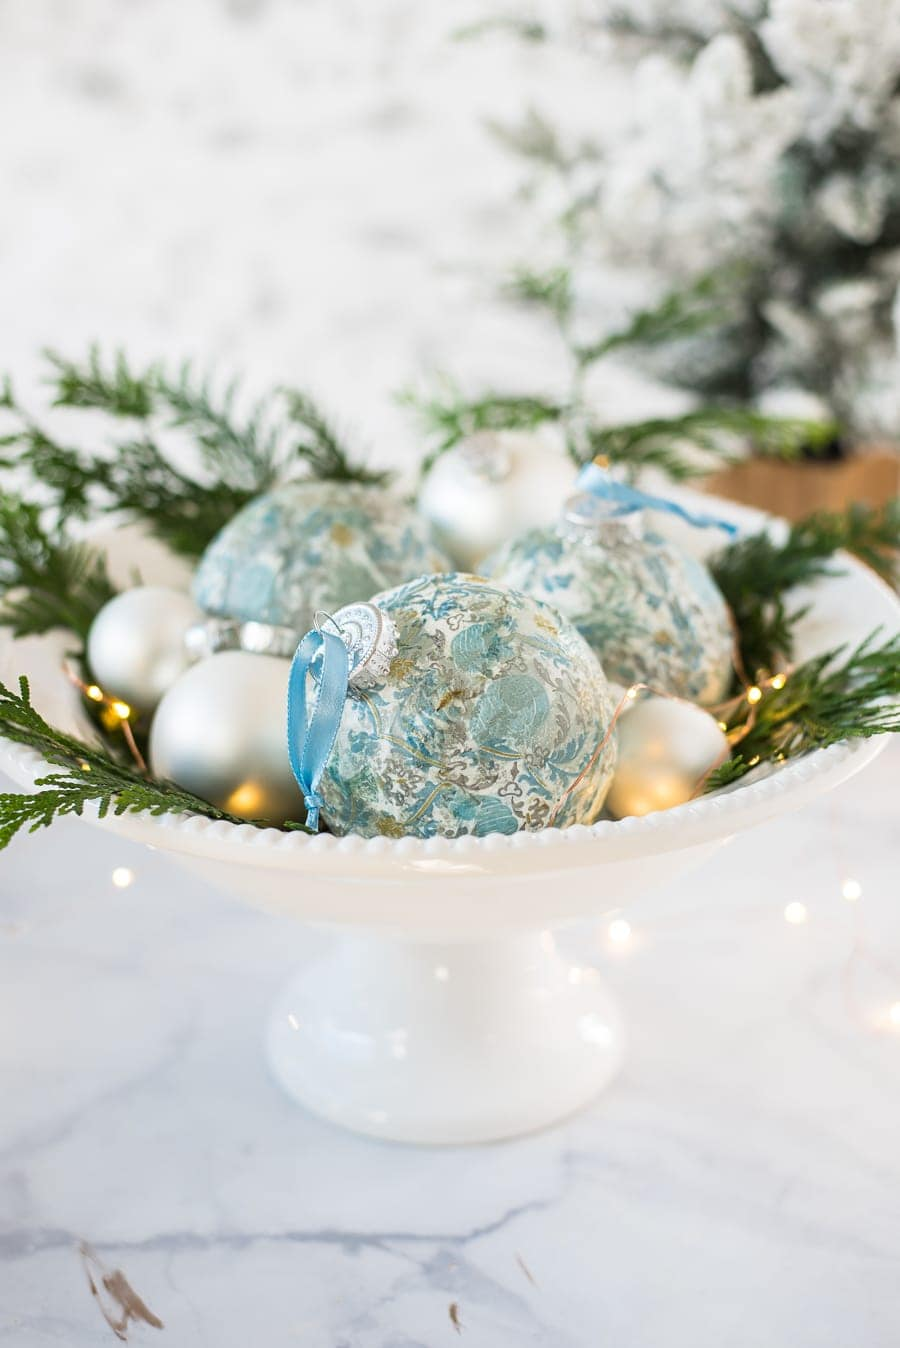 A white pedestal bowl with a beaded trim, holding blue and silver ornaments and sprigs of pine